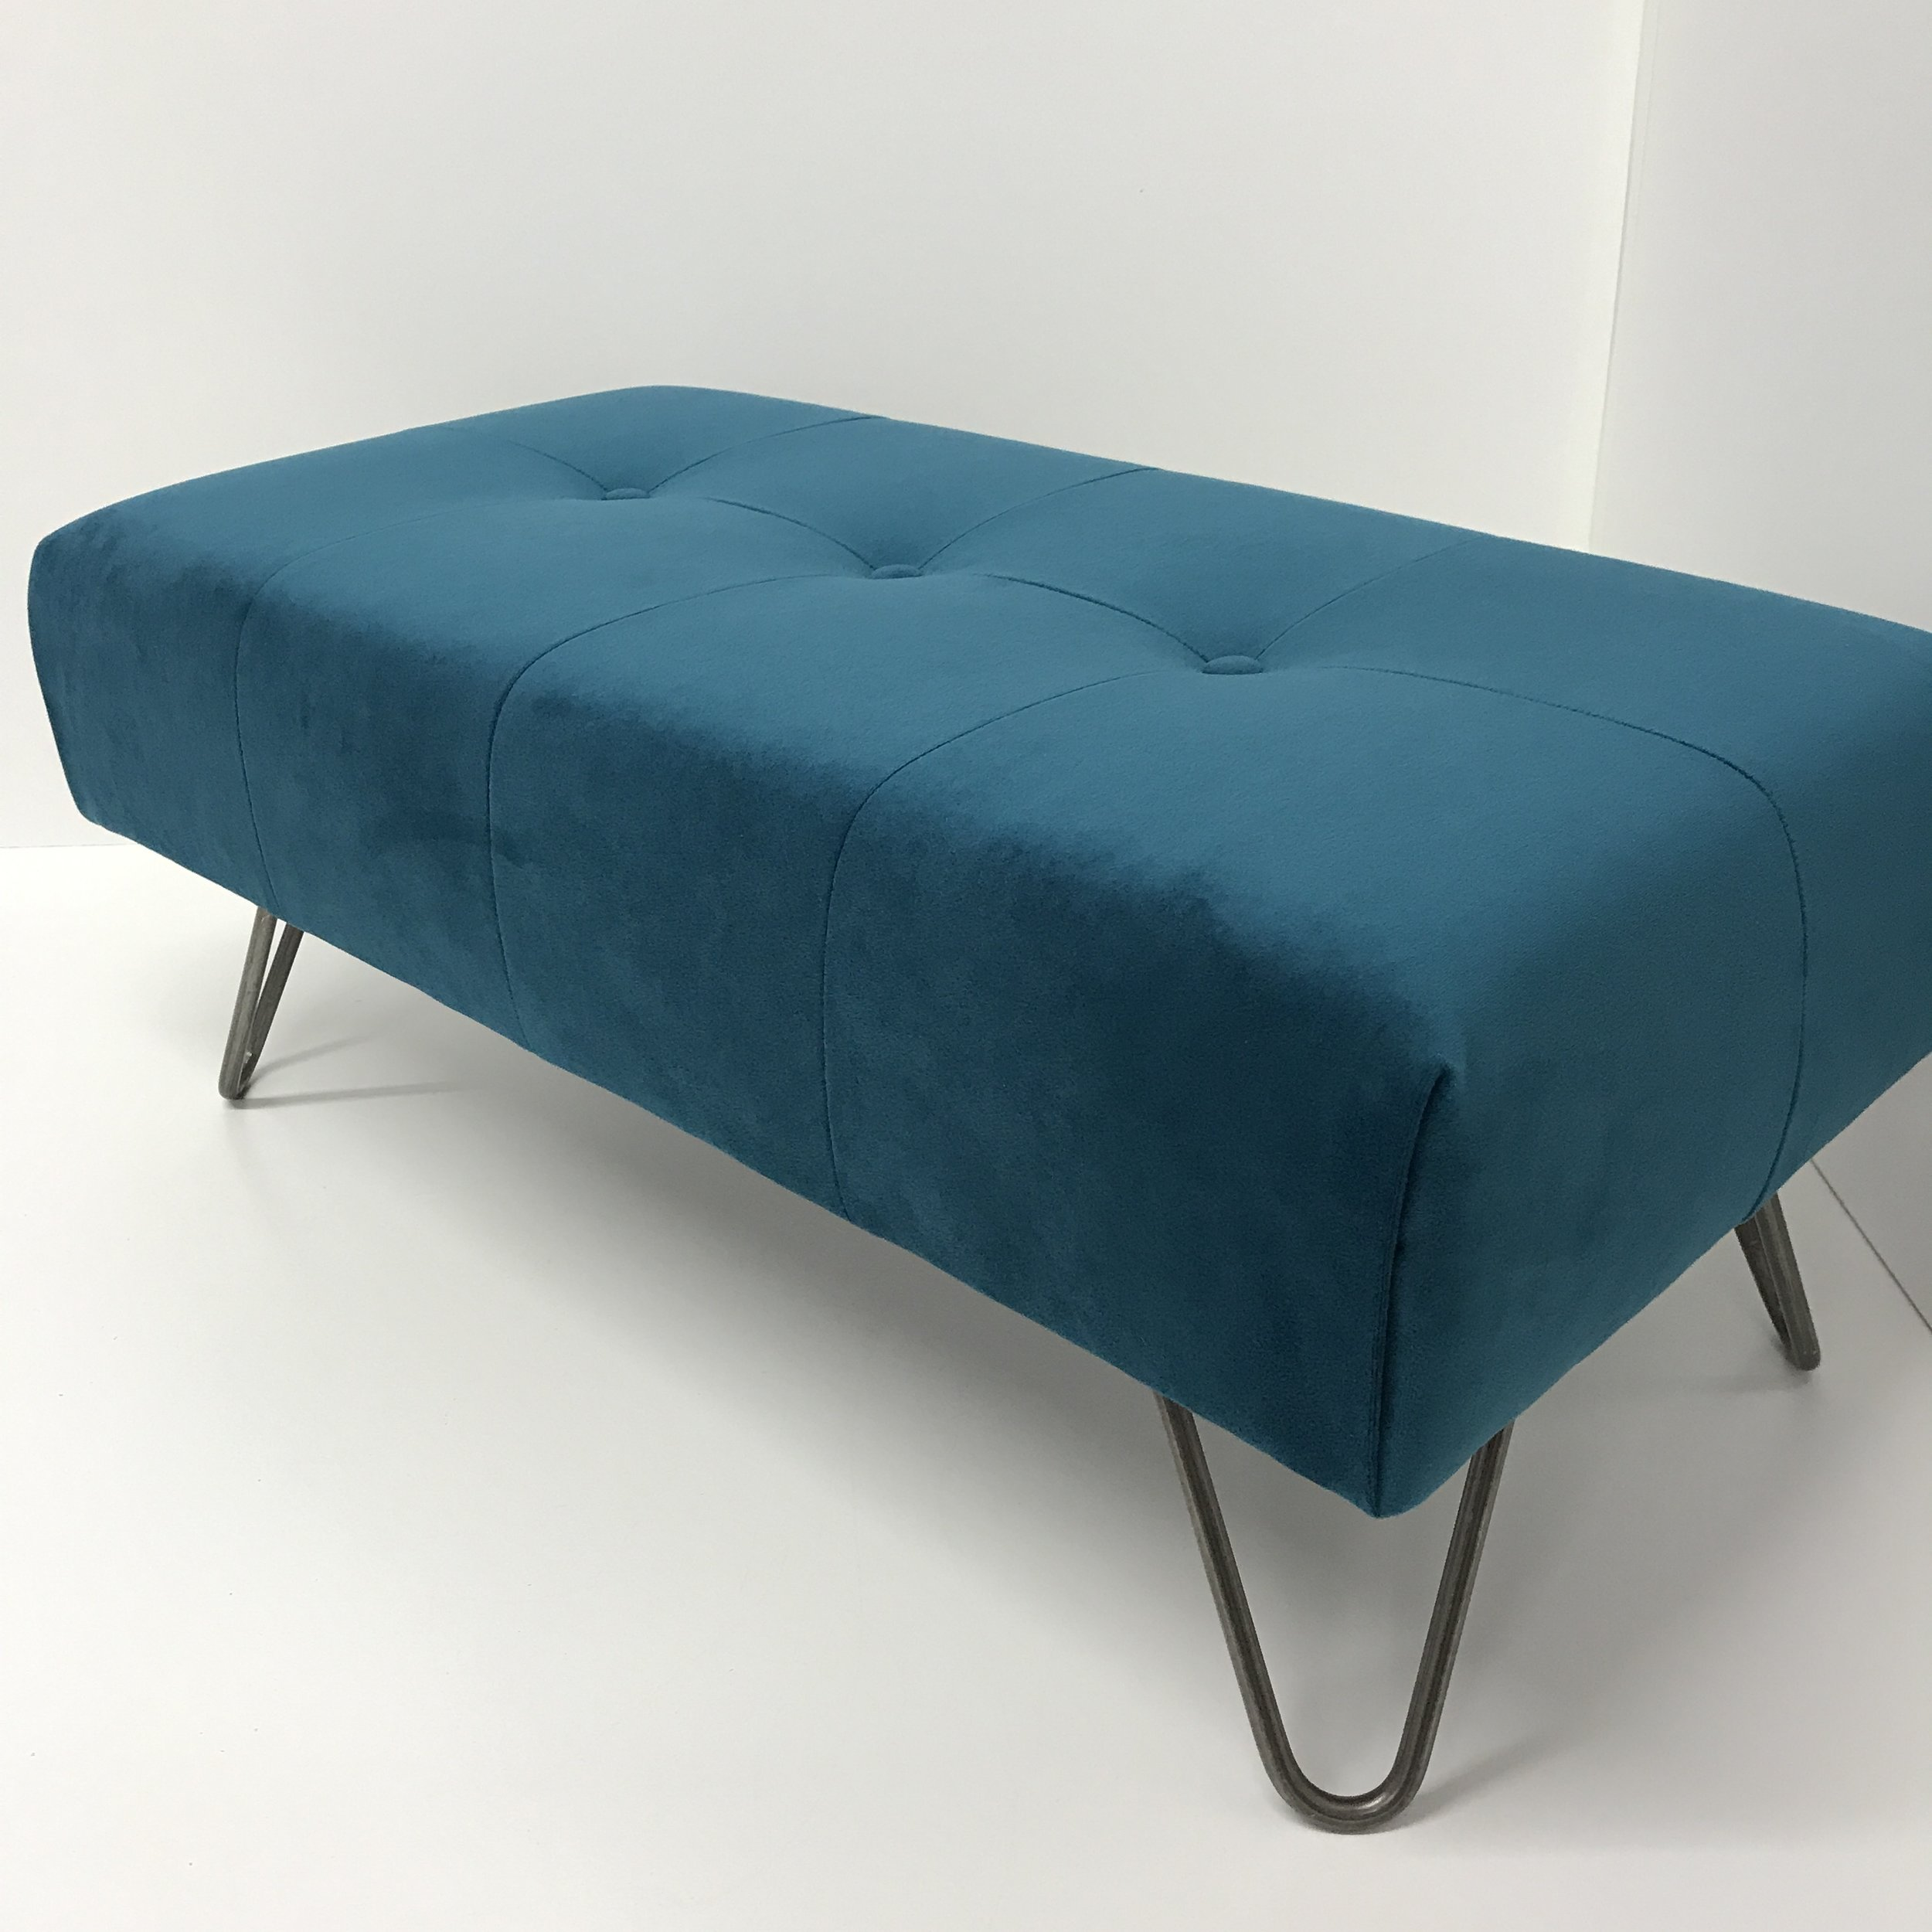 [new] Panel Footstool - Sumptuous velvet panel with button detail & classic hairpin legs